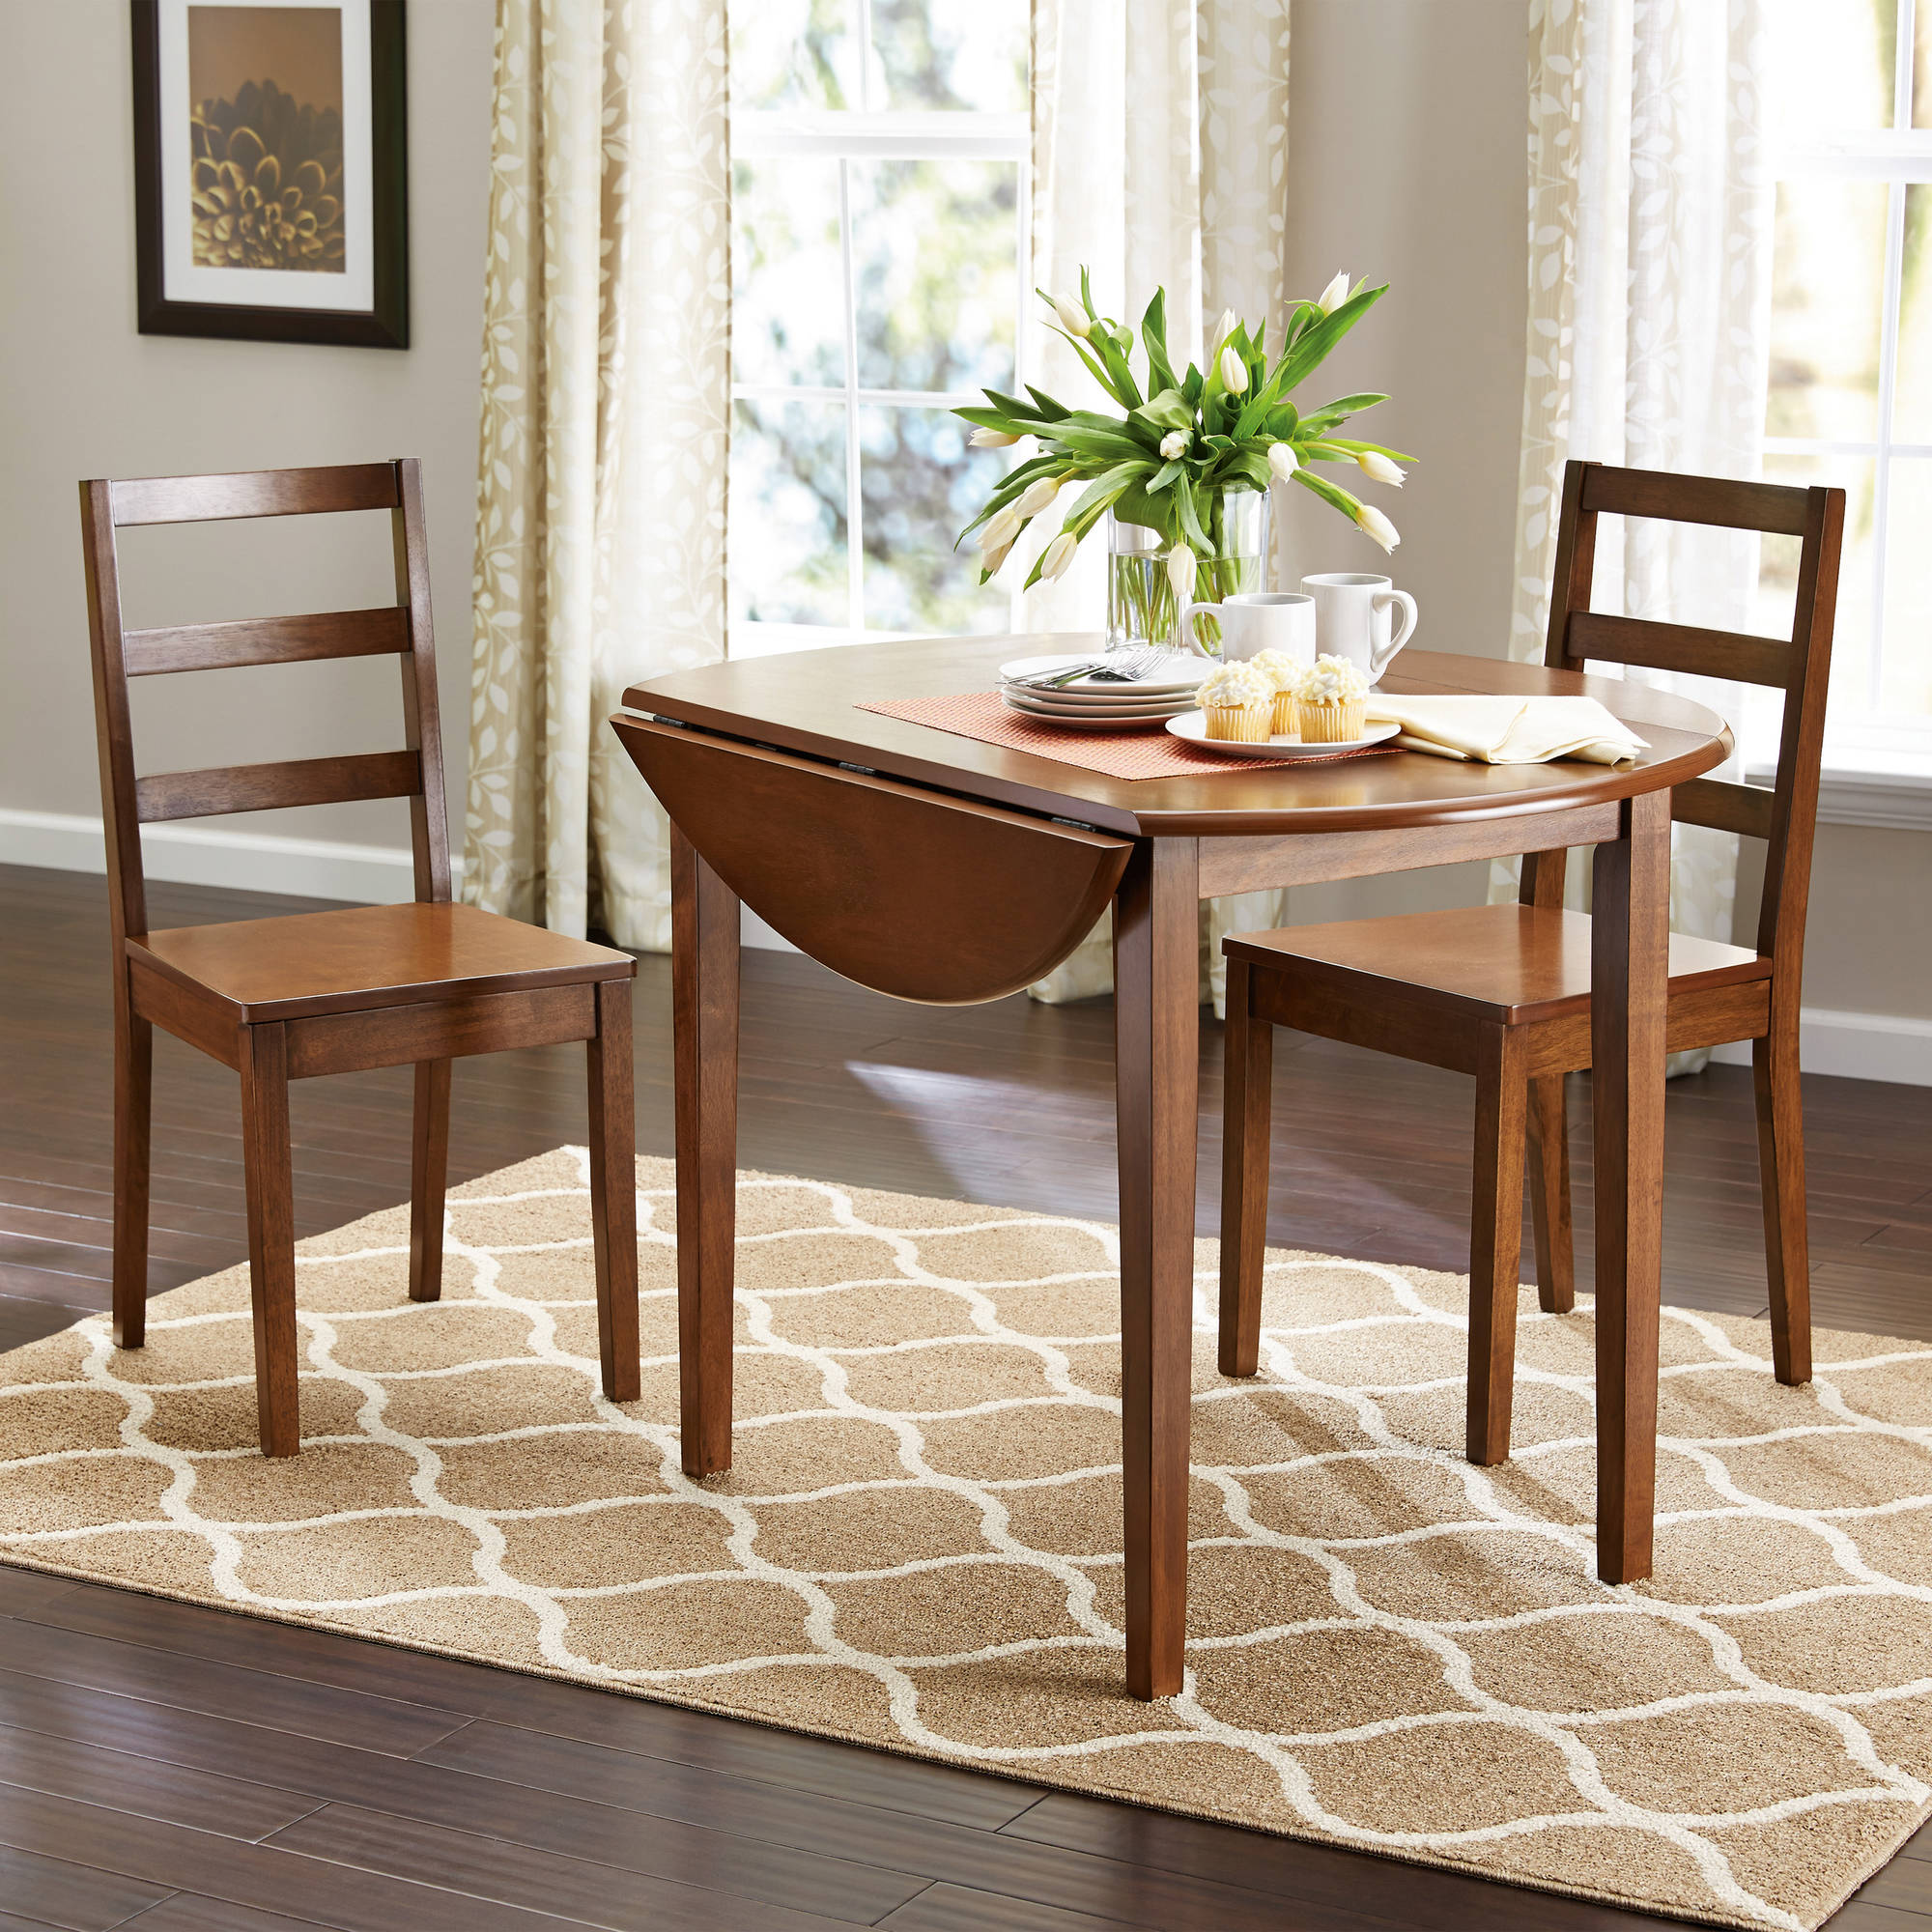 Mainstays 3 piece drop leaf dining set medium oak finish walmart com